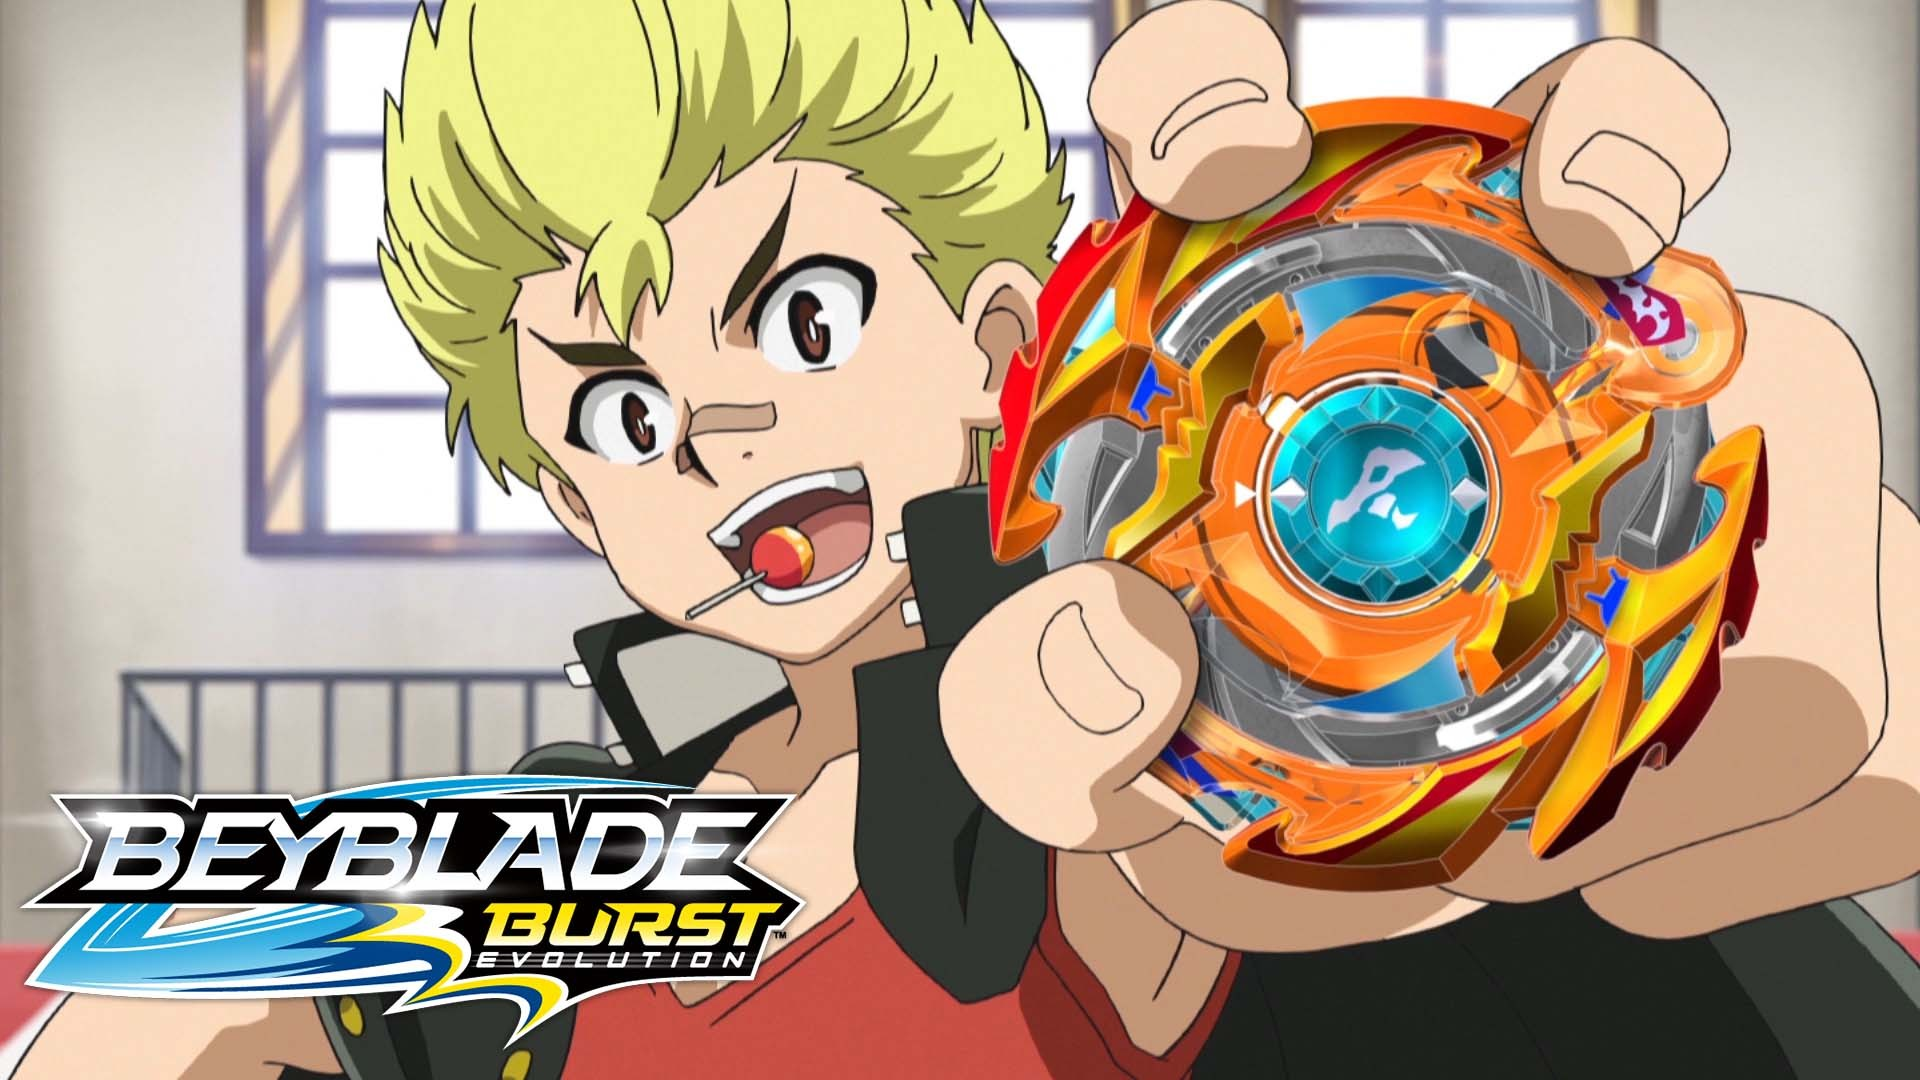 Bayblade wallpapers elegant the ficial beyblade burst website of bayblade wallpapers